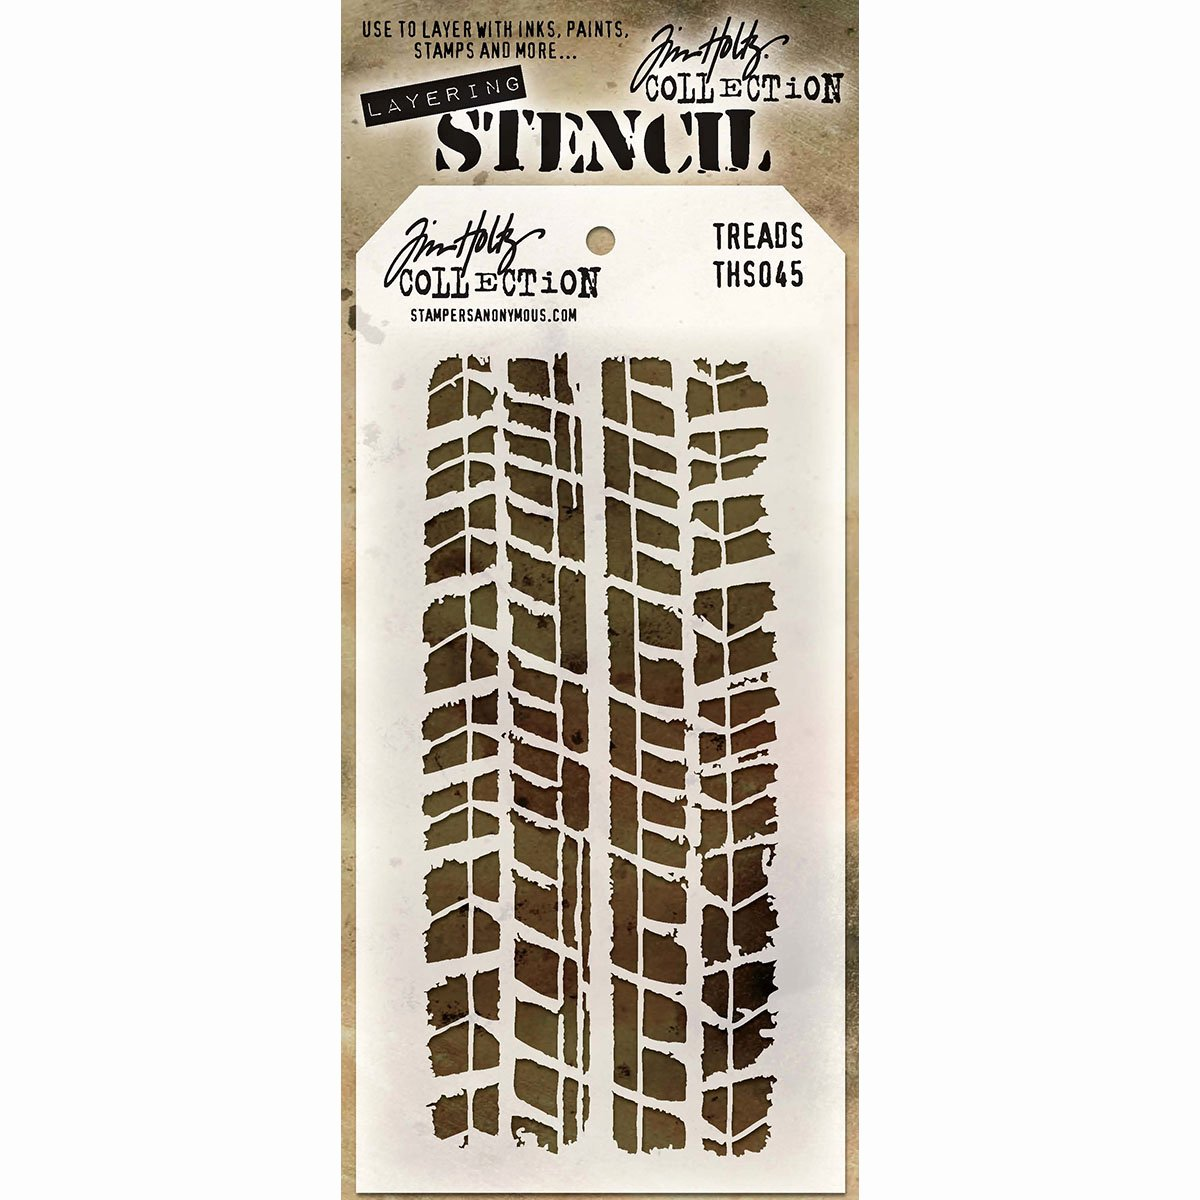 Multi Layer Stencils for Sale Awesome Tim Holtz Layering Stencil Treads Ths045 Stampers